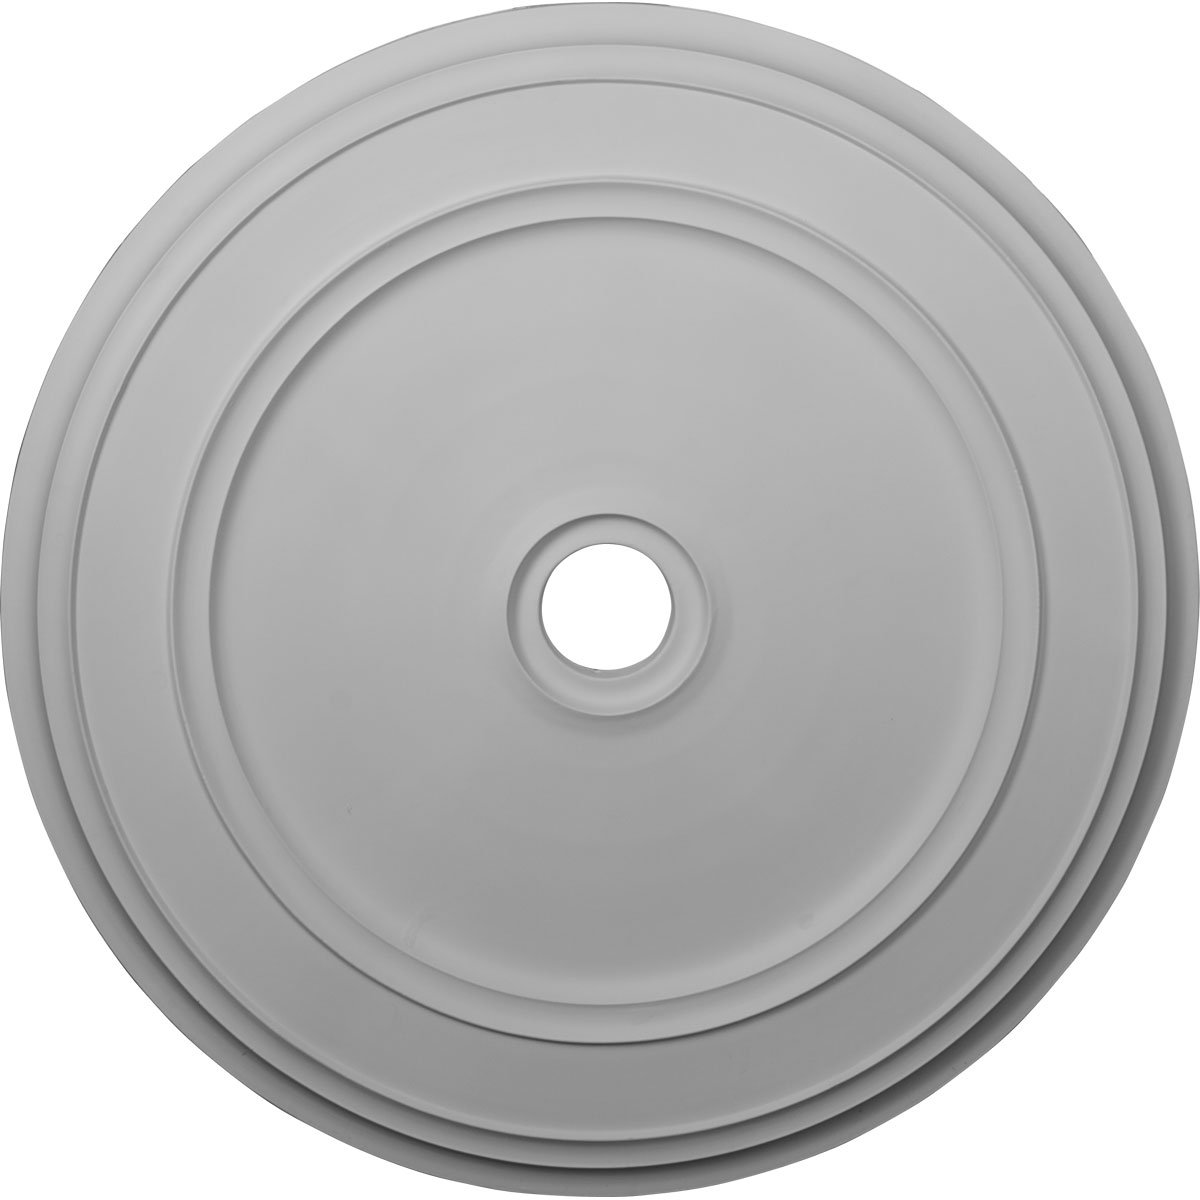 Ekena Millwork CM41CL 41.12 in. OD x 4 in. ID x 2.12 in. P Architectural Accents - Classic Ceiling Medallion Fits Canopies up to 5.50 in.